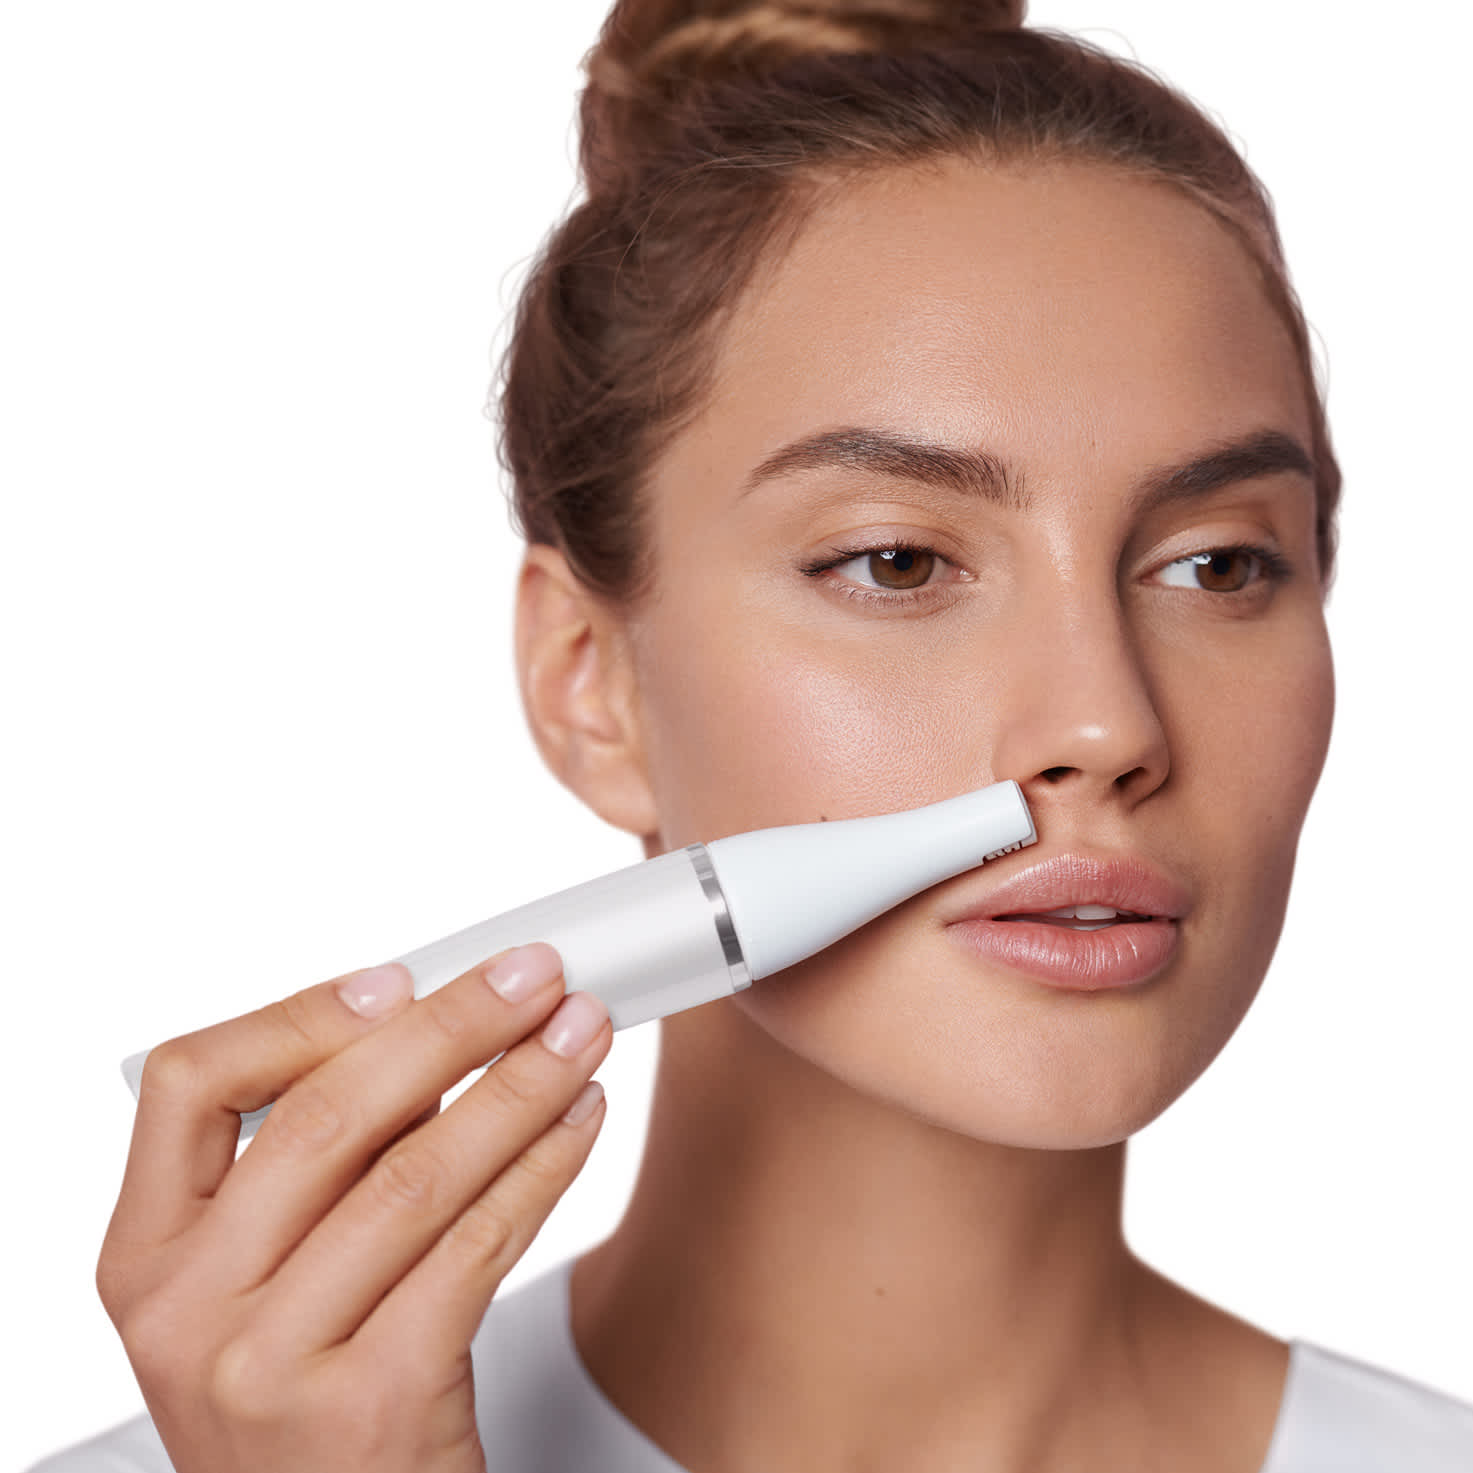 Braun Face 830 Premium Edition - facial epilator - in use